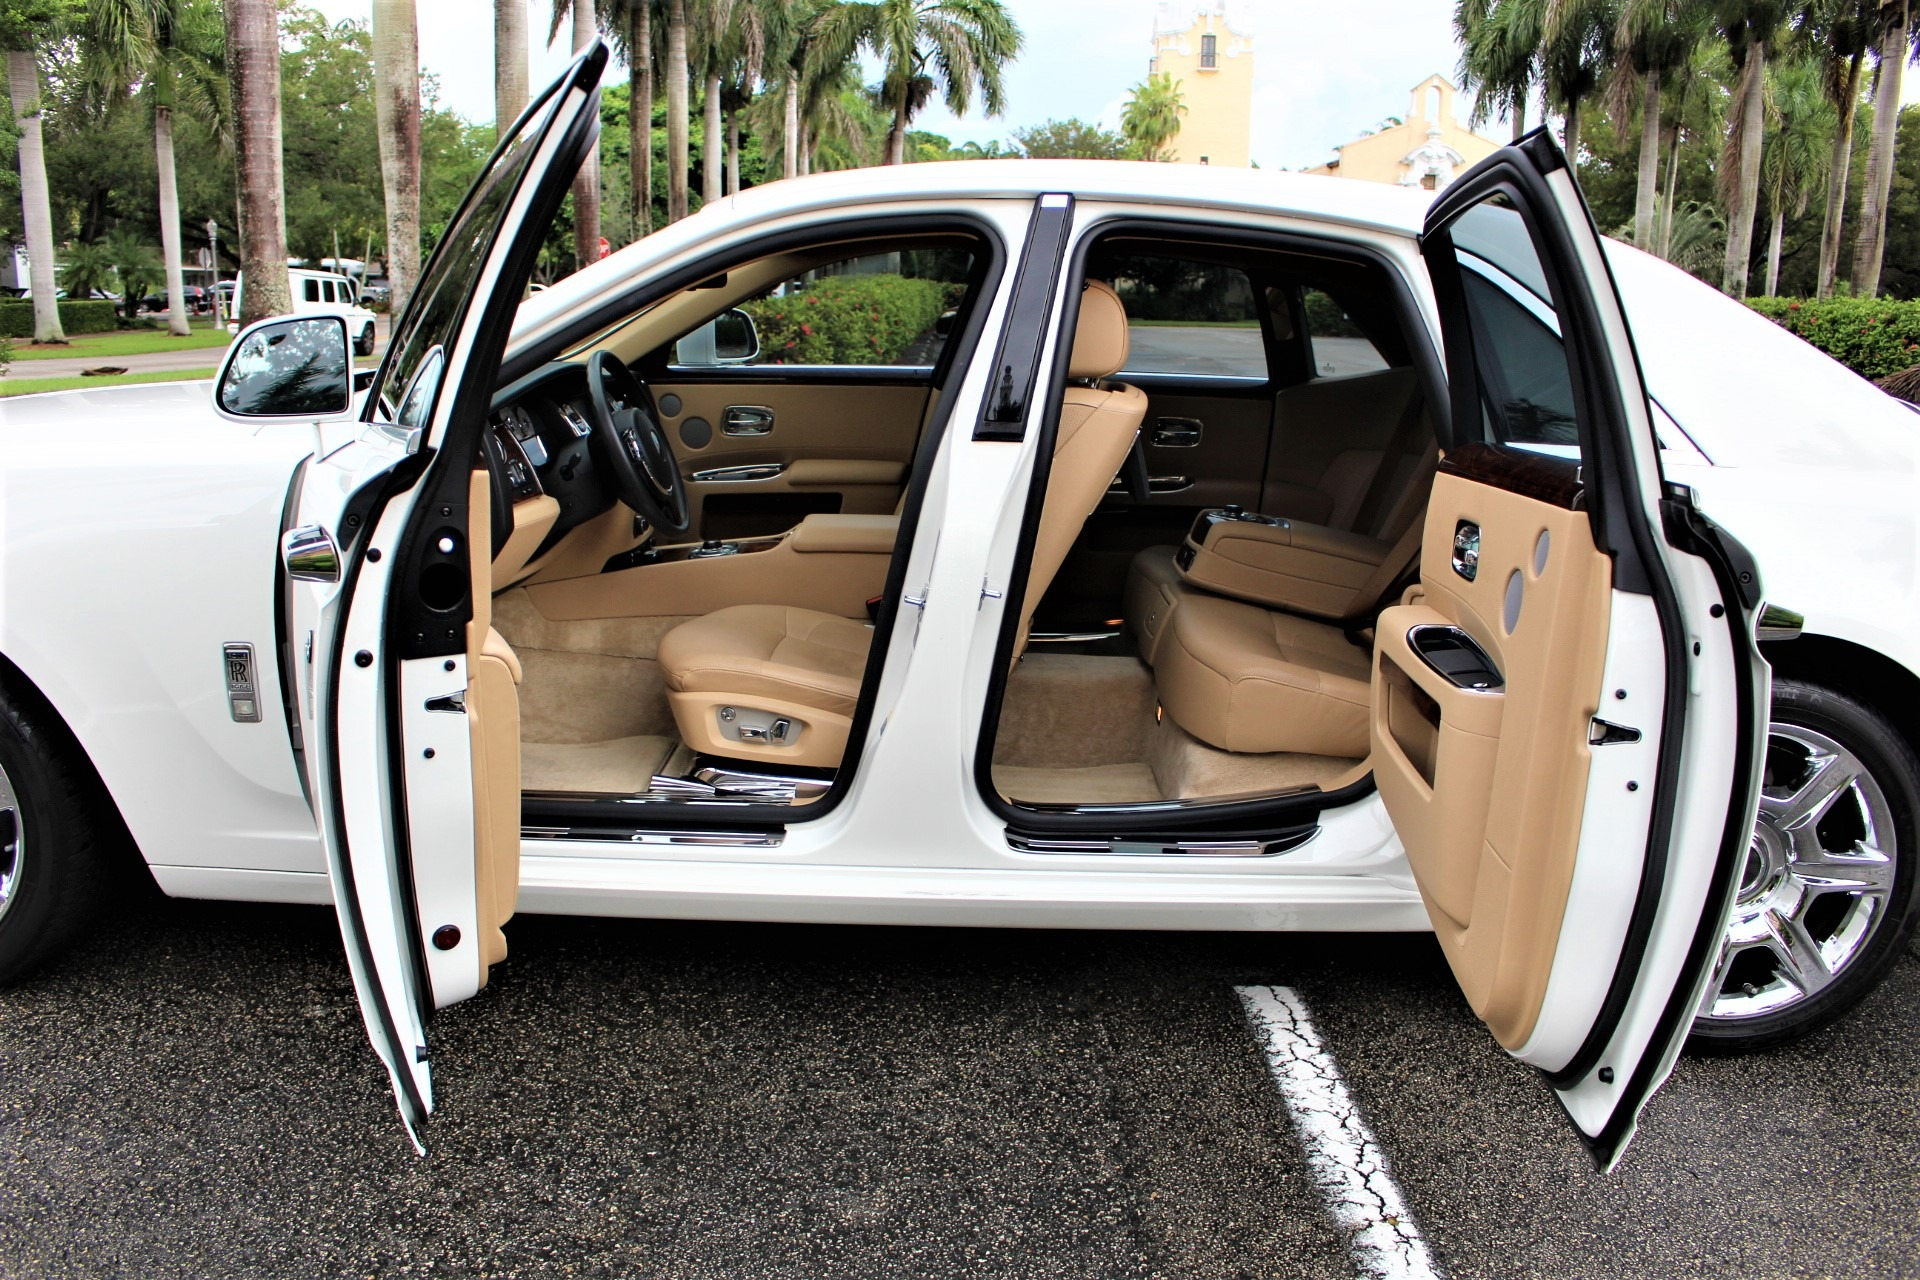 Used 2012 Rolls-Royce Ghost for sale $138,850 at The Gables Sports Cars in Miami FL 33146 4